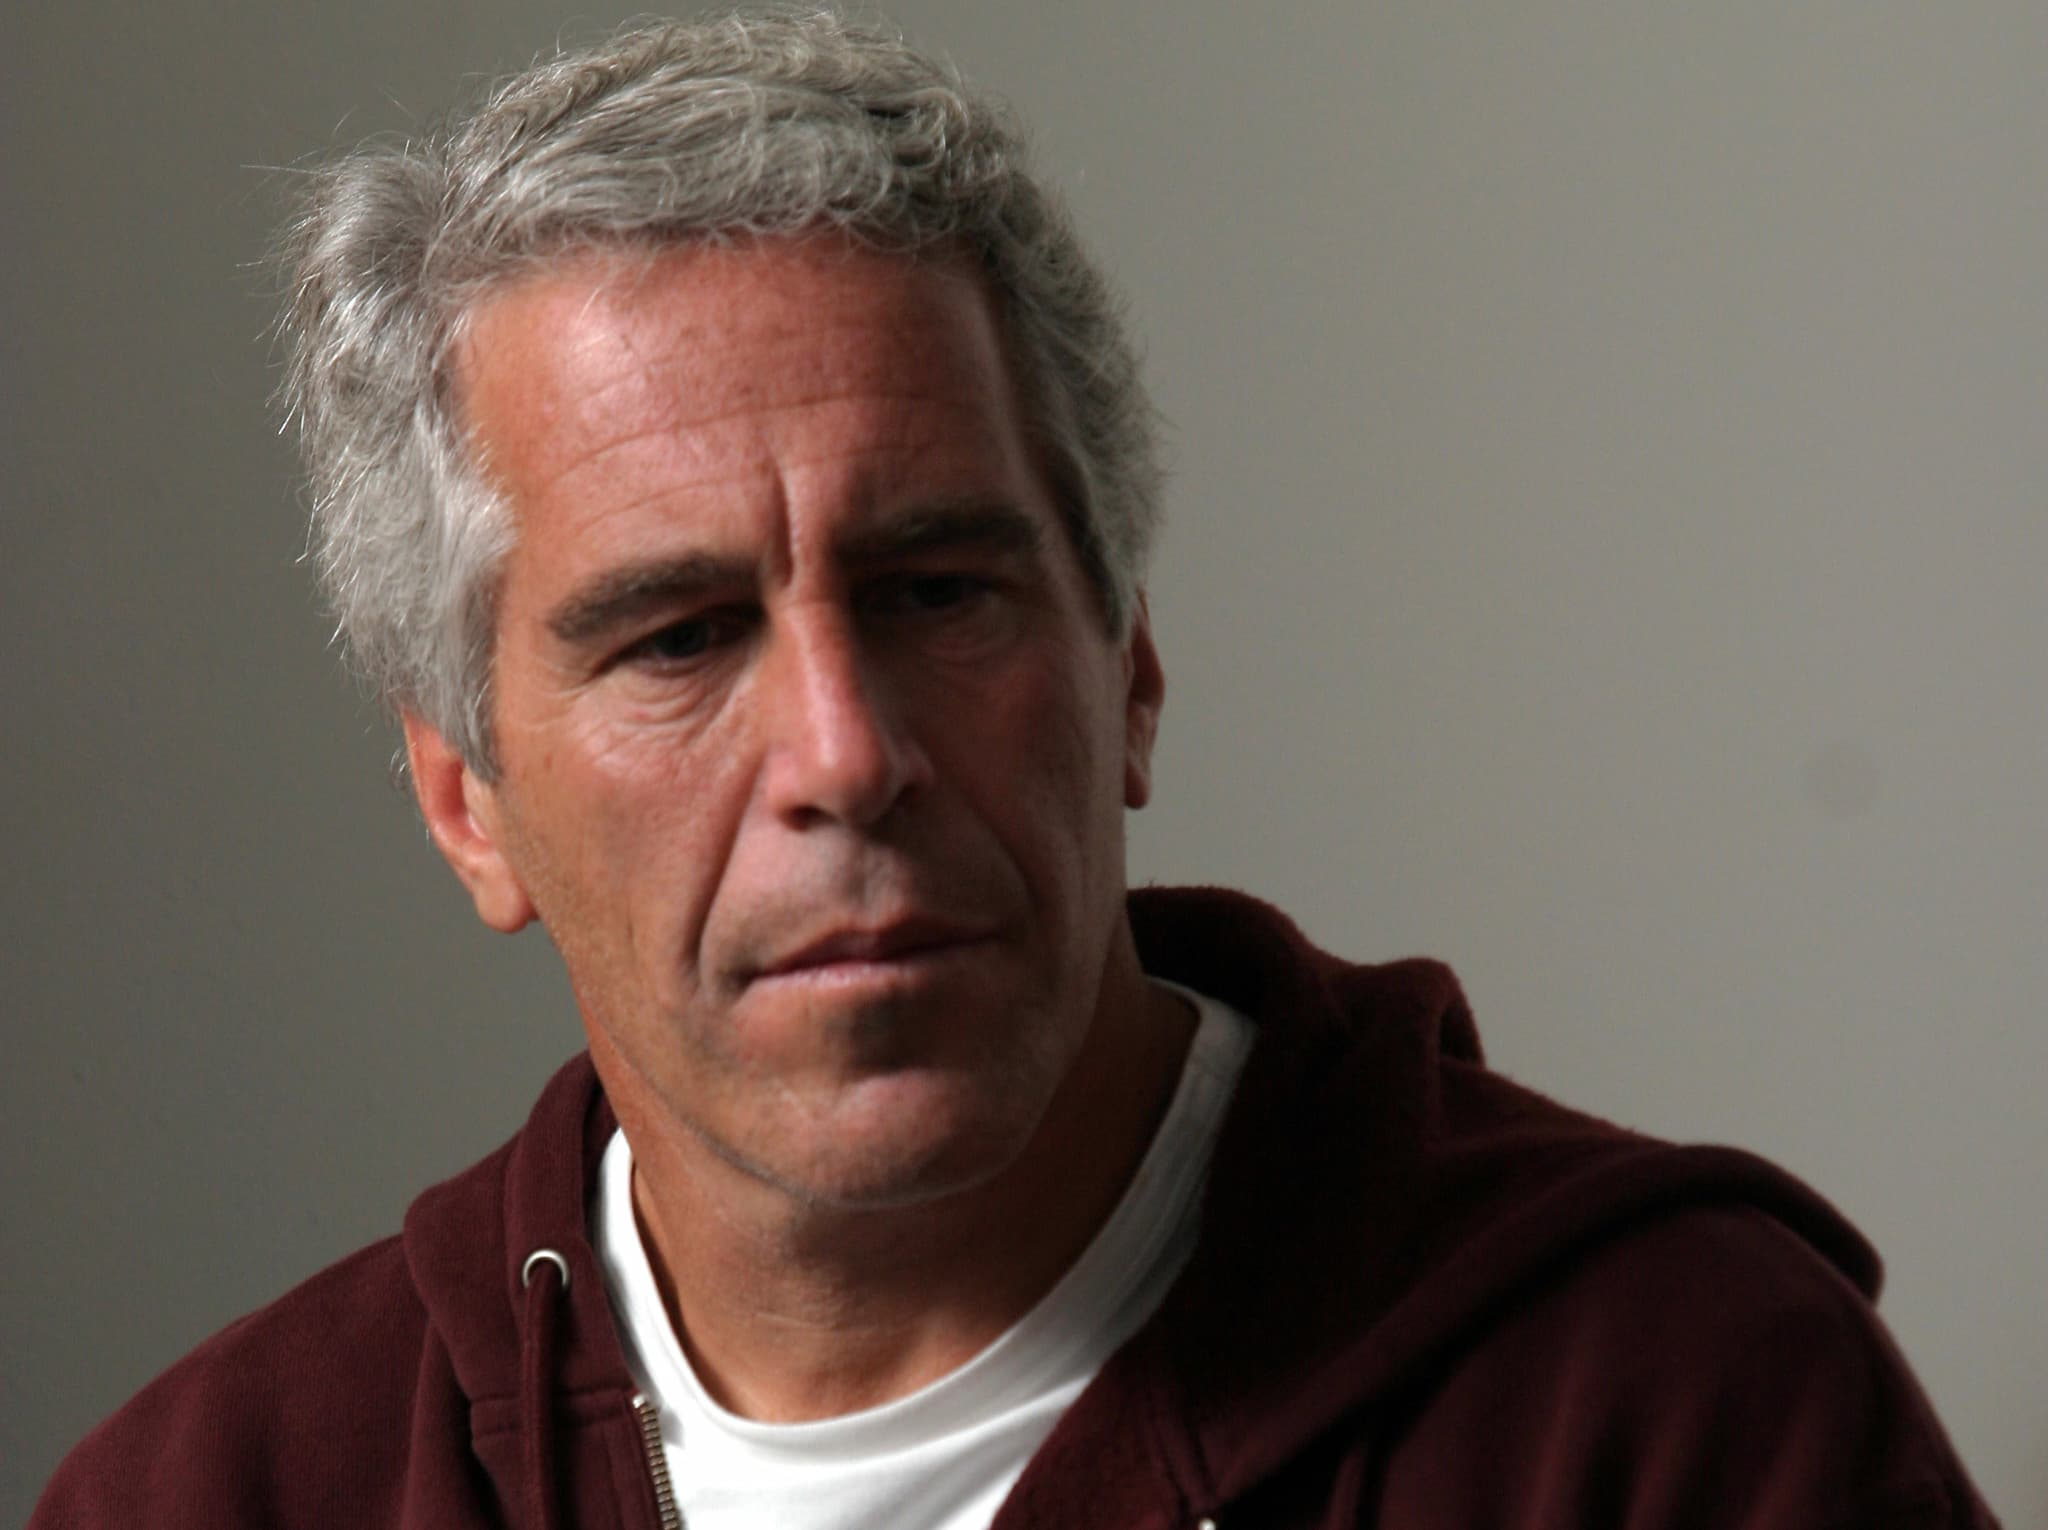 Epstein was reportedly left alone and not monitored before he killed himself in Manhattan jail cell